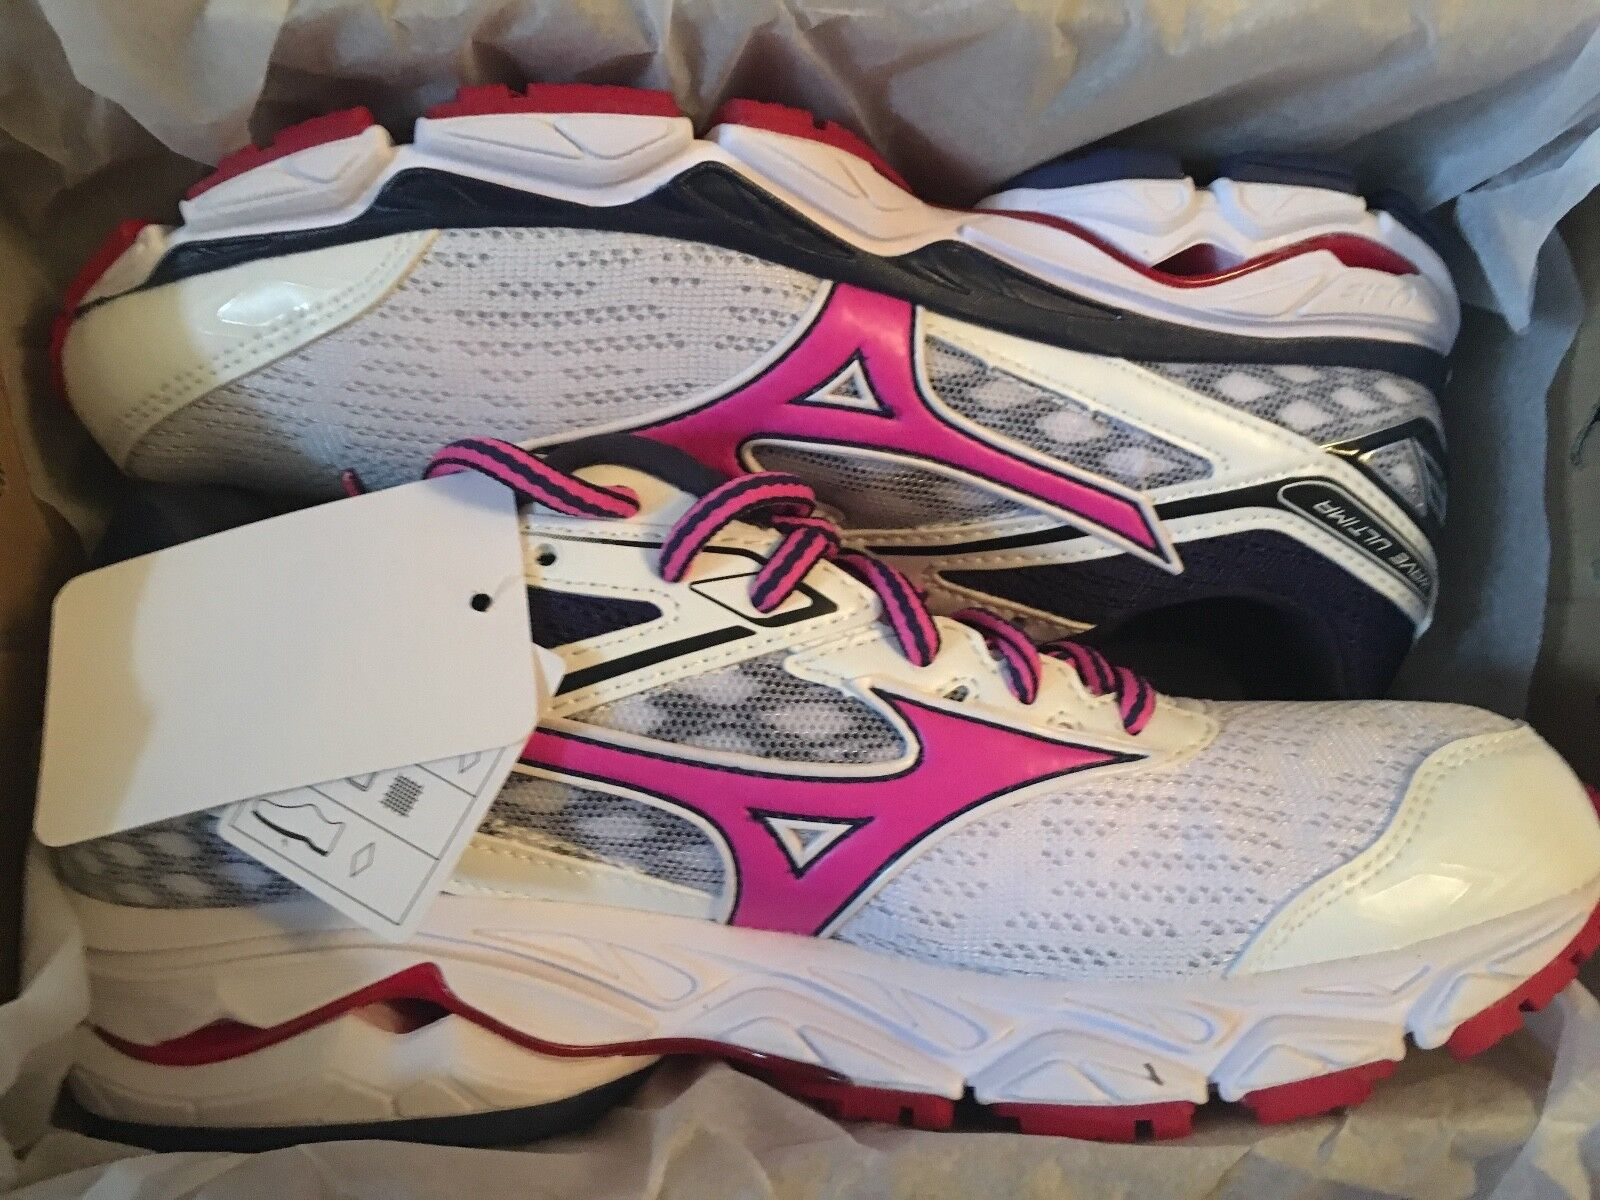 Mizuno Wave Ultima 9 Damenschuhe Running Schuhes-  - UK 36.5 4 US 6.5 EU 36.5 UK 3ba79a